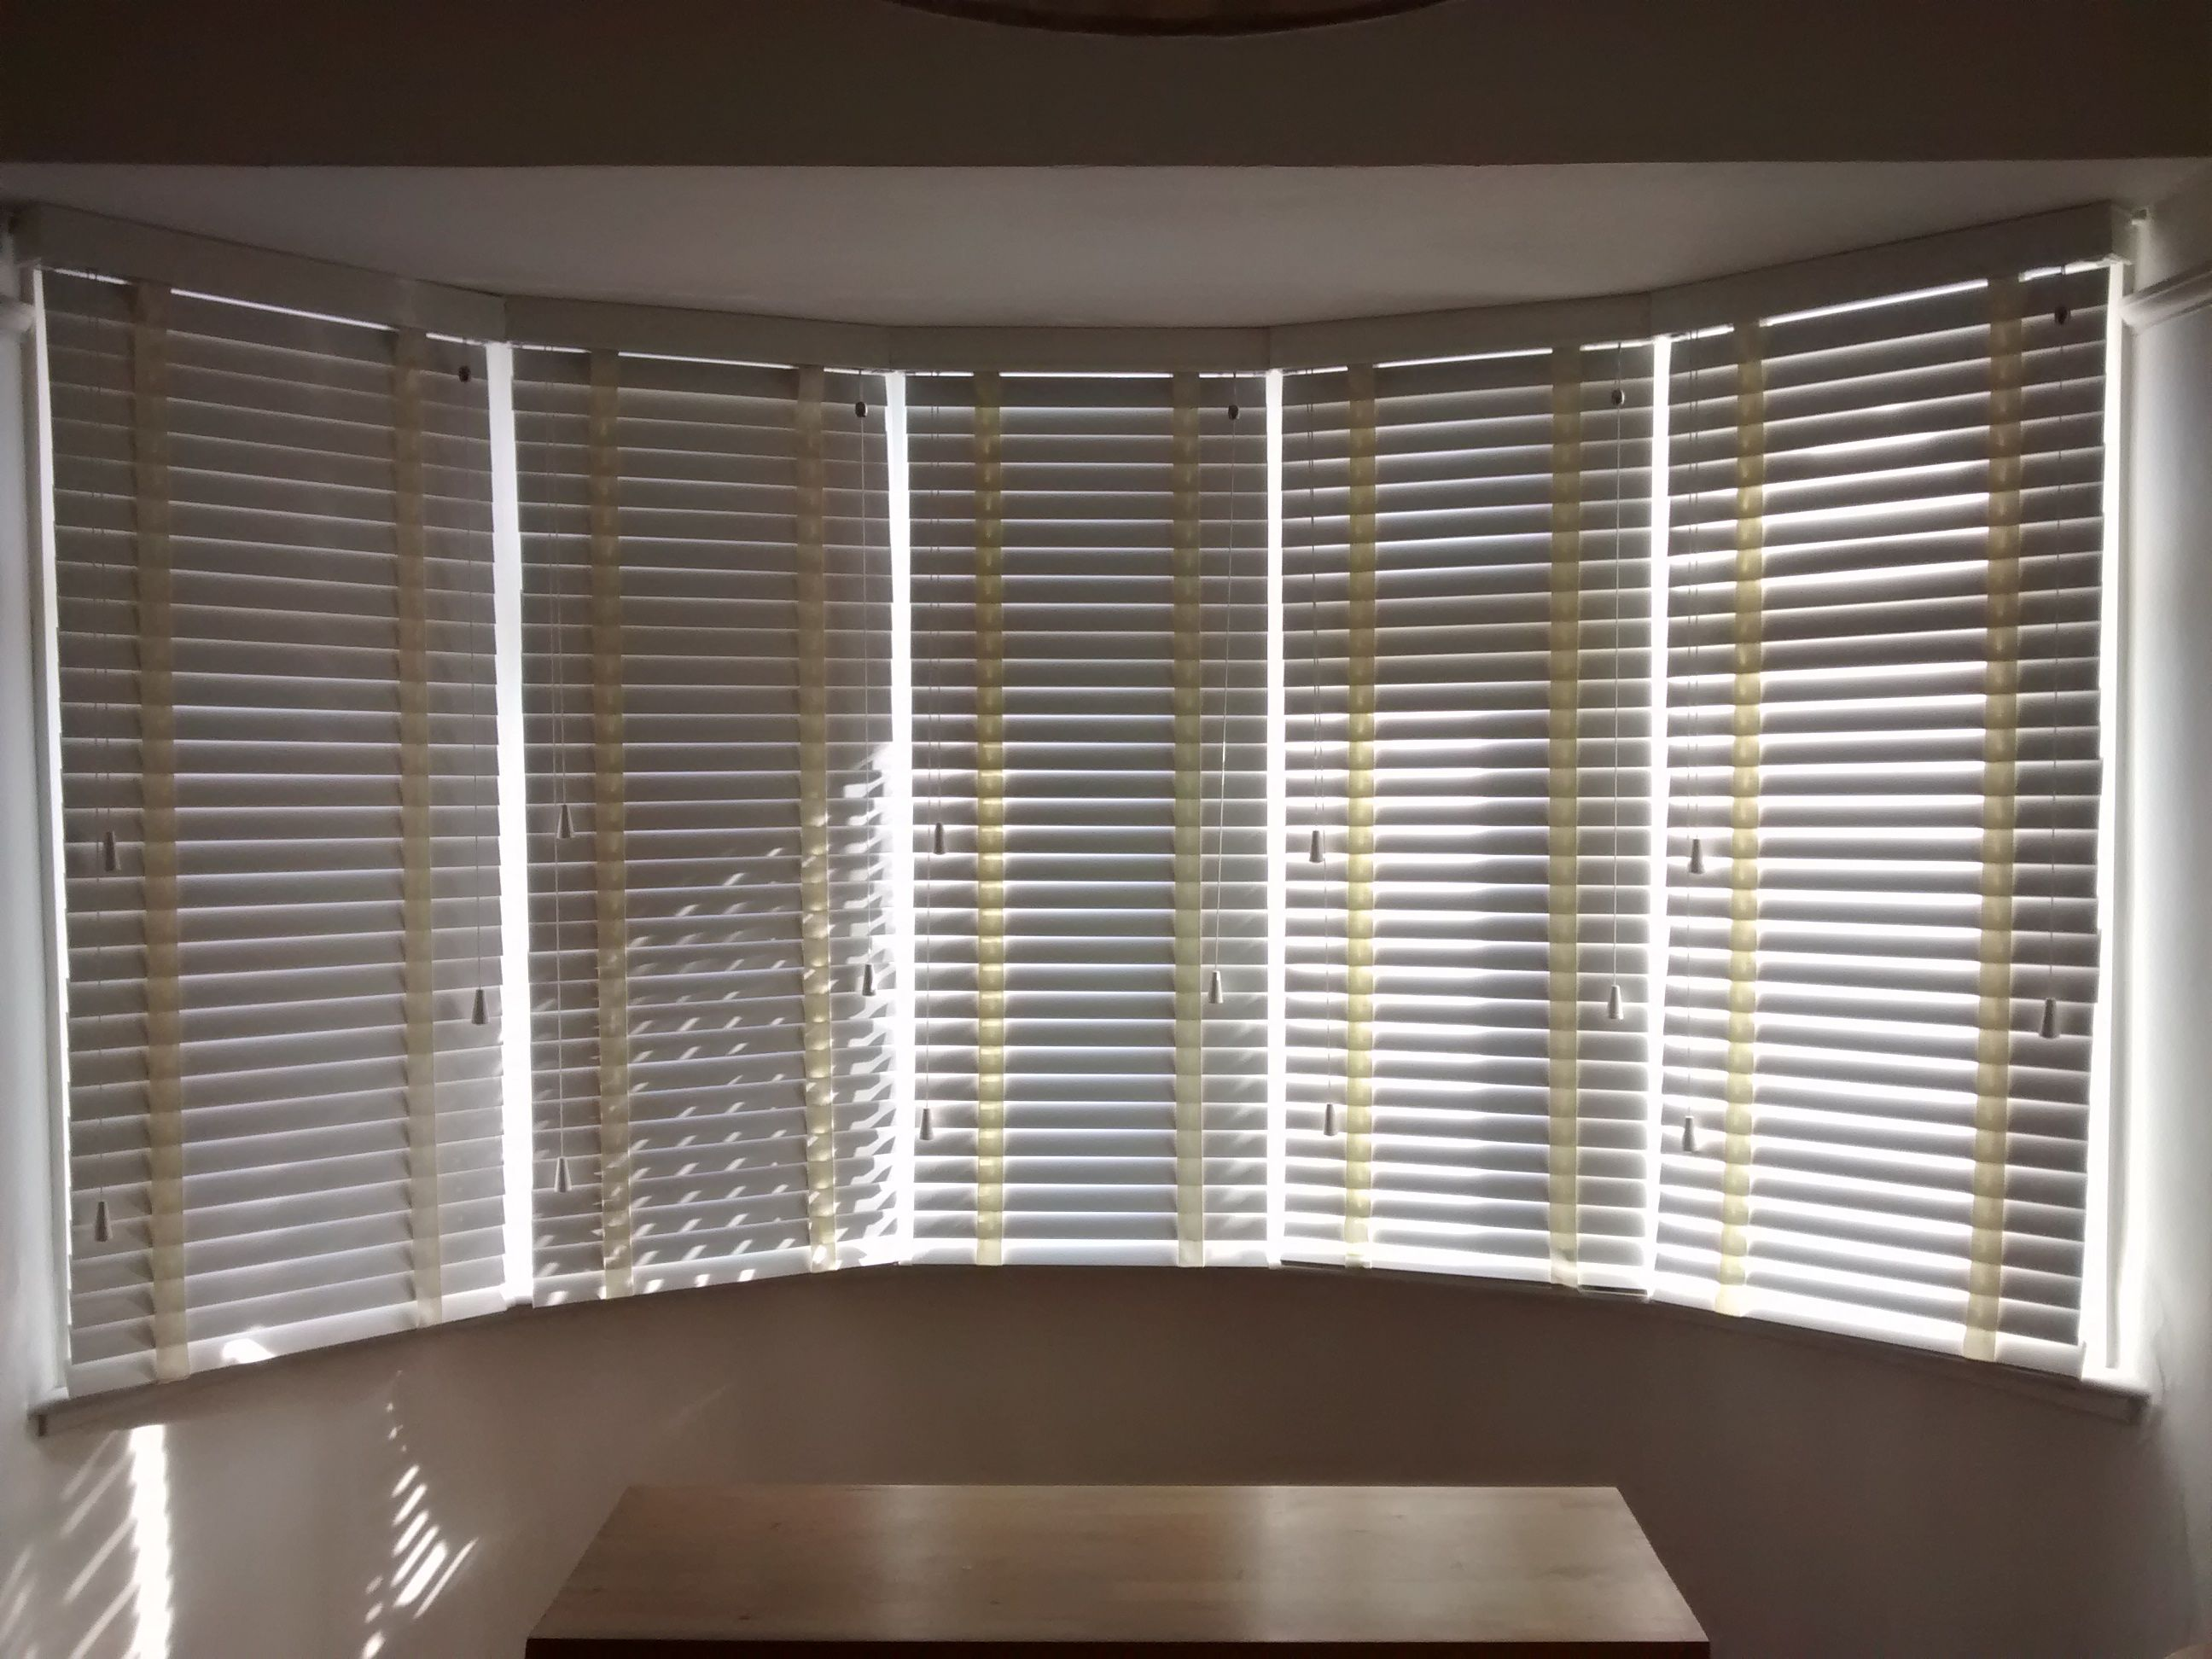 Bay window blinds - Wood Venetian Blinds In Chalk Colour Fitted To A 5 Sectioned Bay Window By The